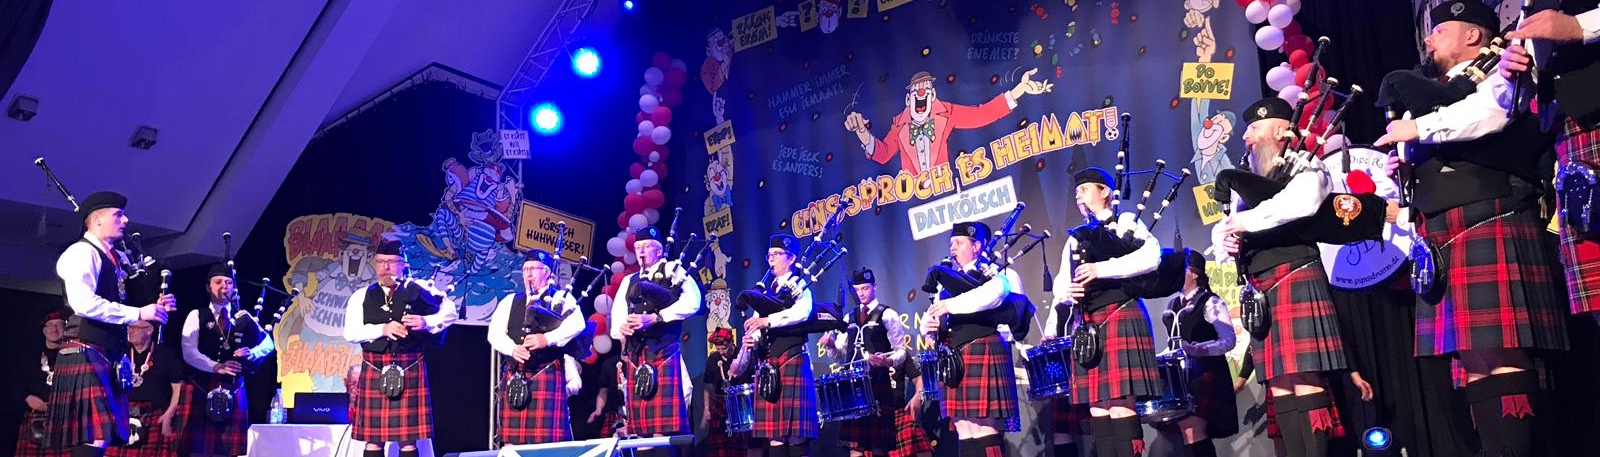 Nutscheid Forest Pipe Band e.V